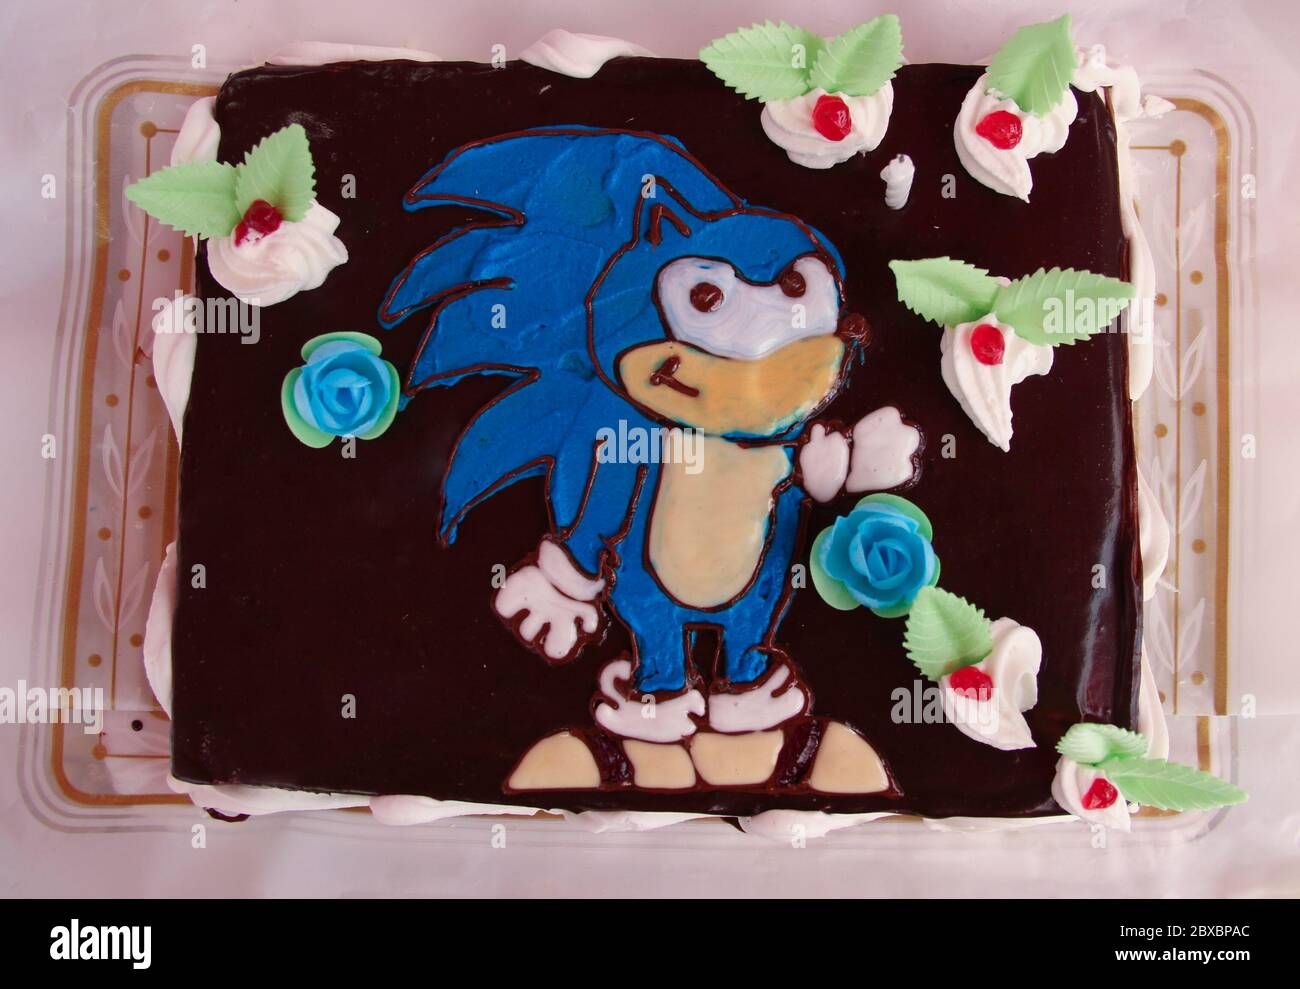 Cartoon Cake High Resolution Stock Photography And Images Alamy